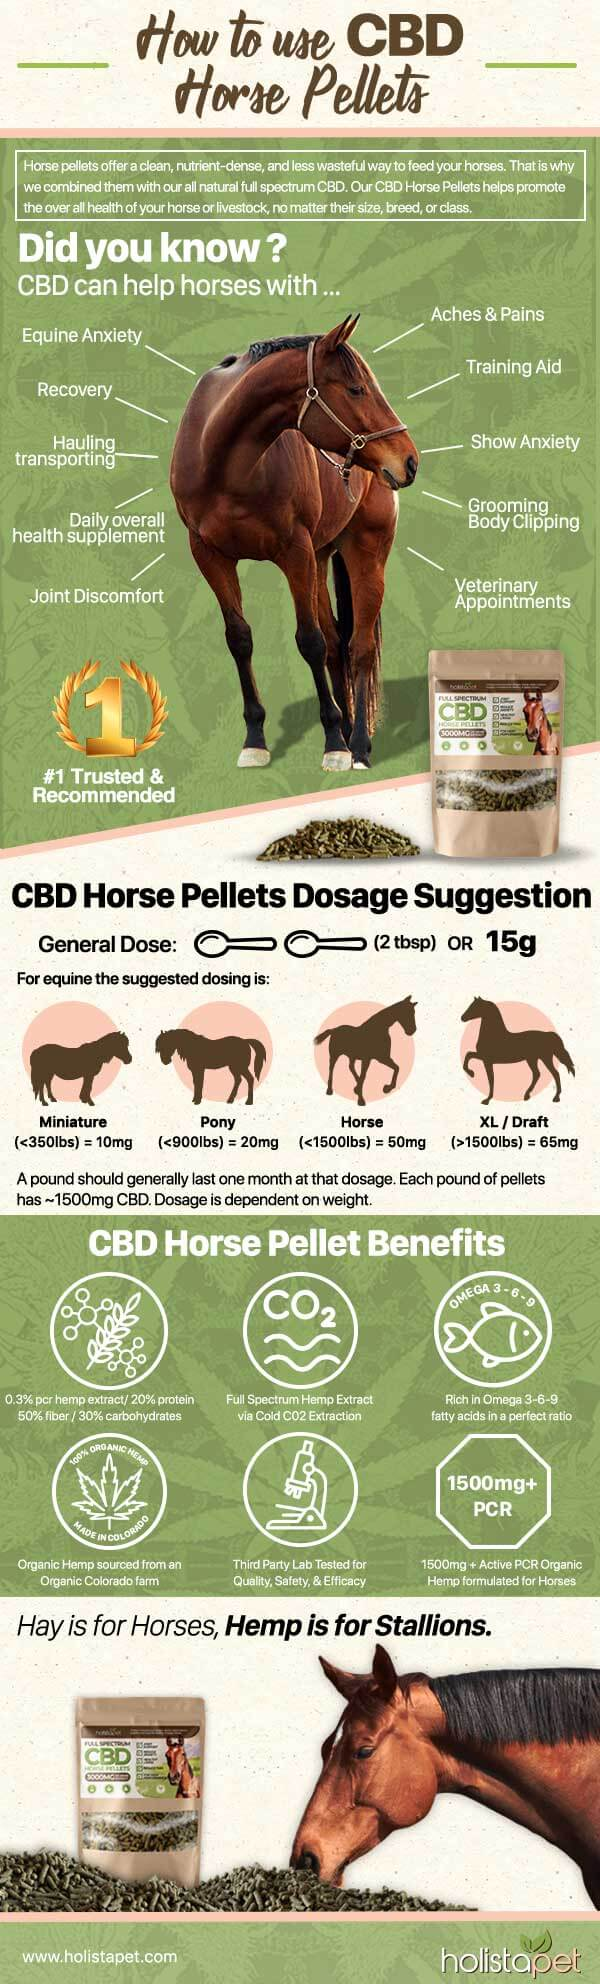 How Do CBD Pellets for Horses Work